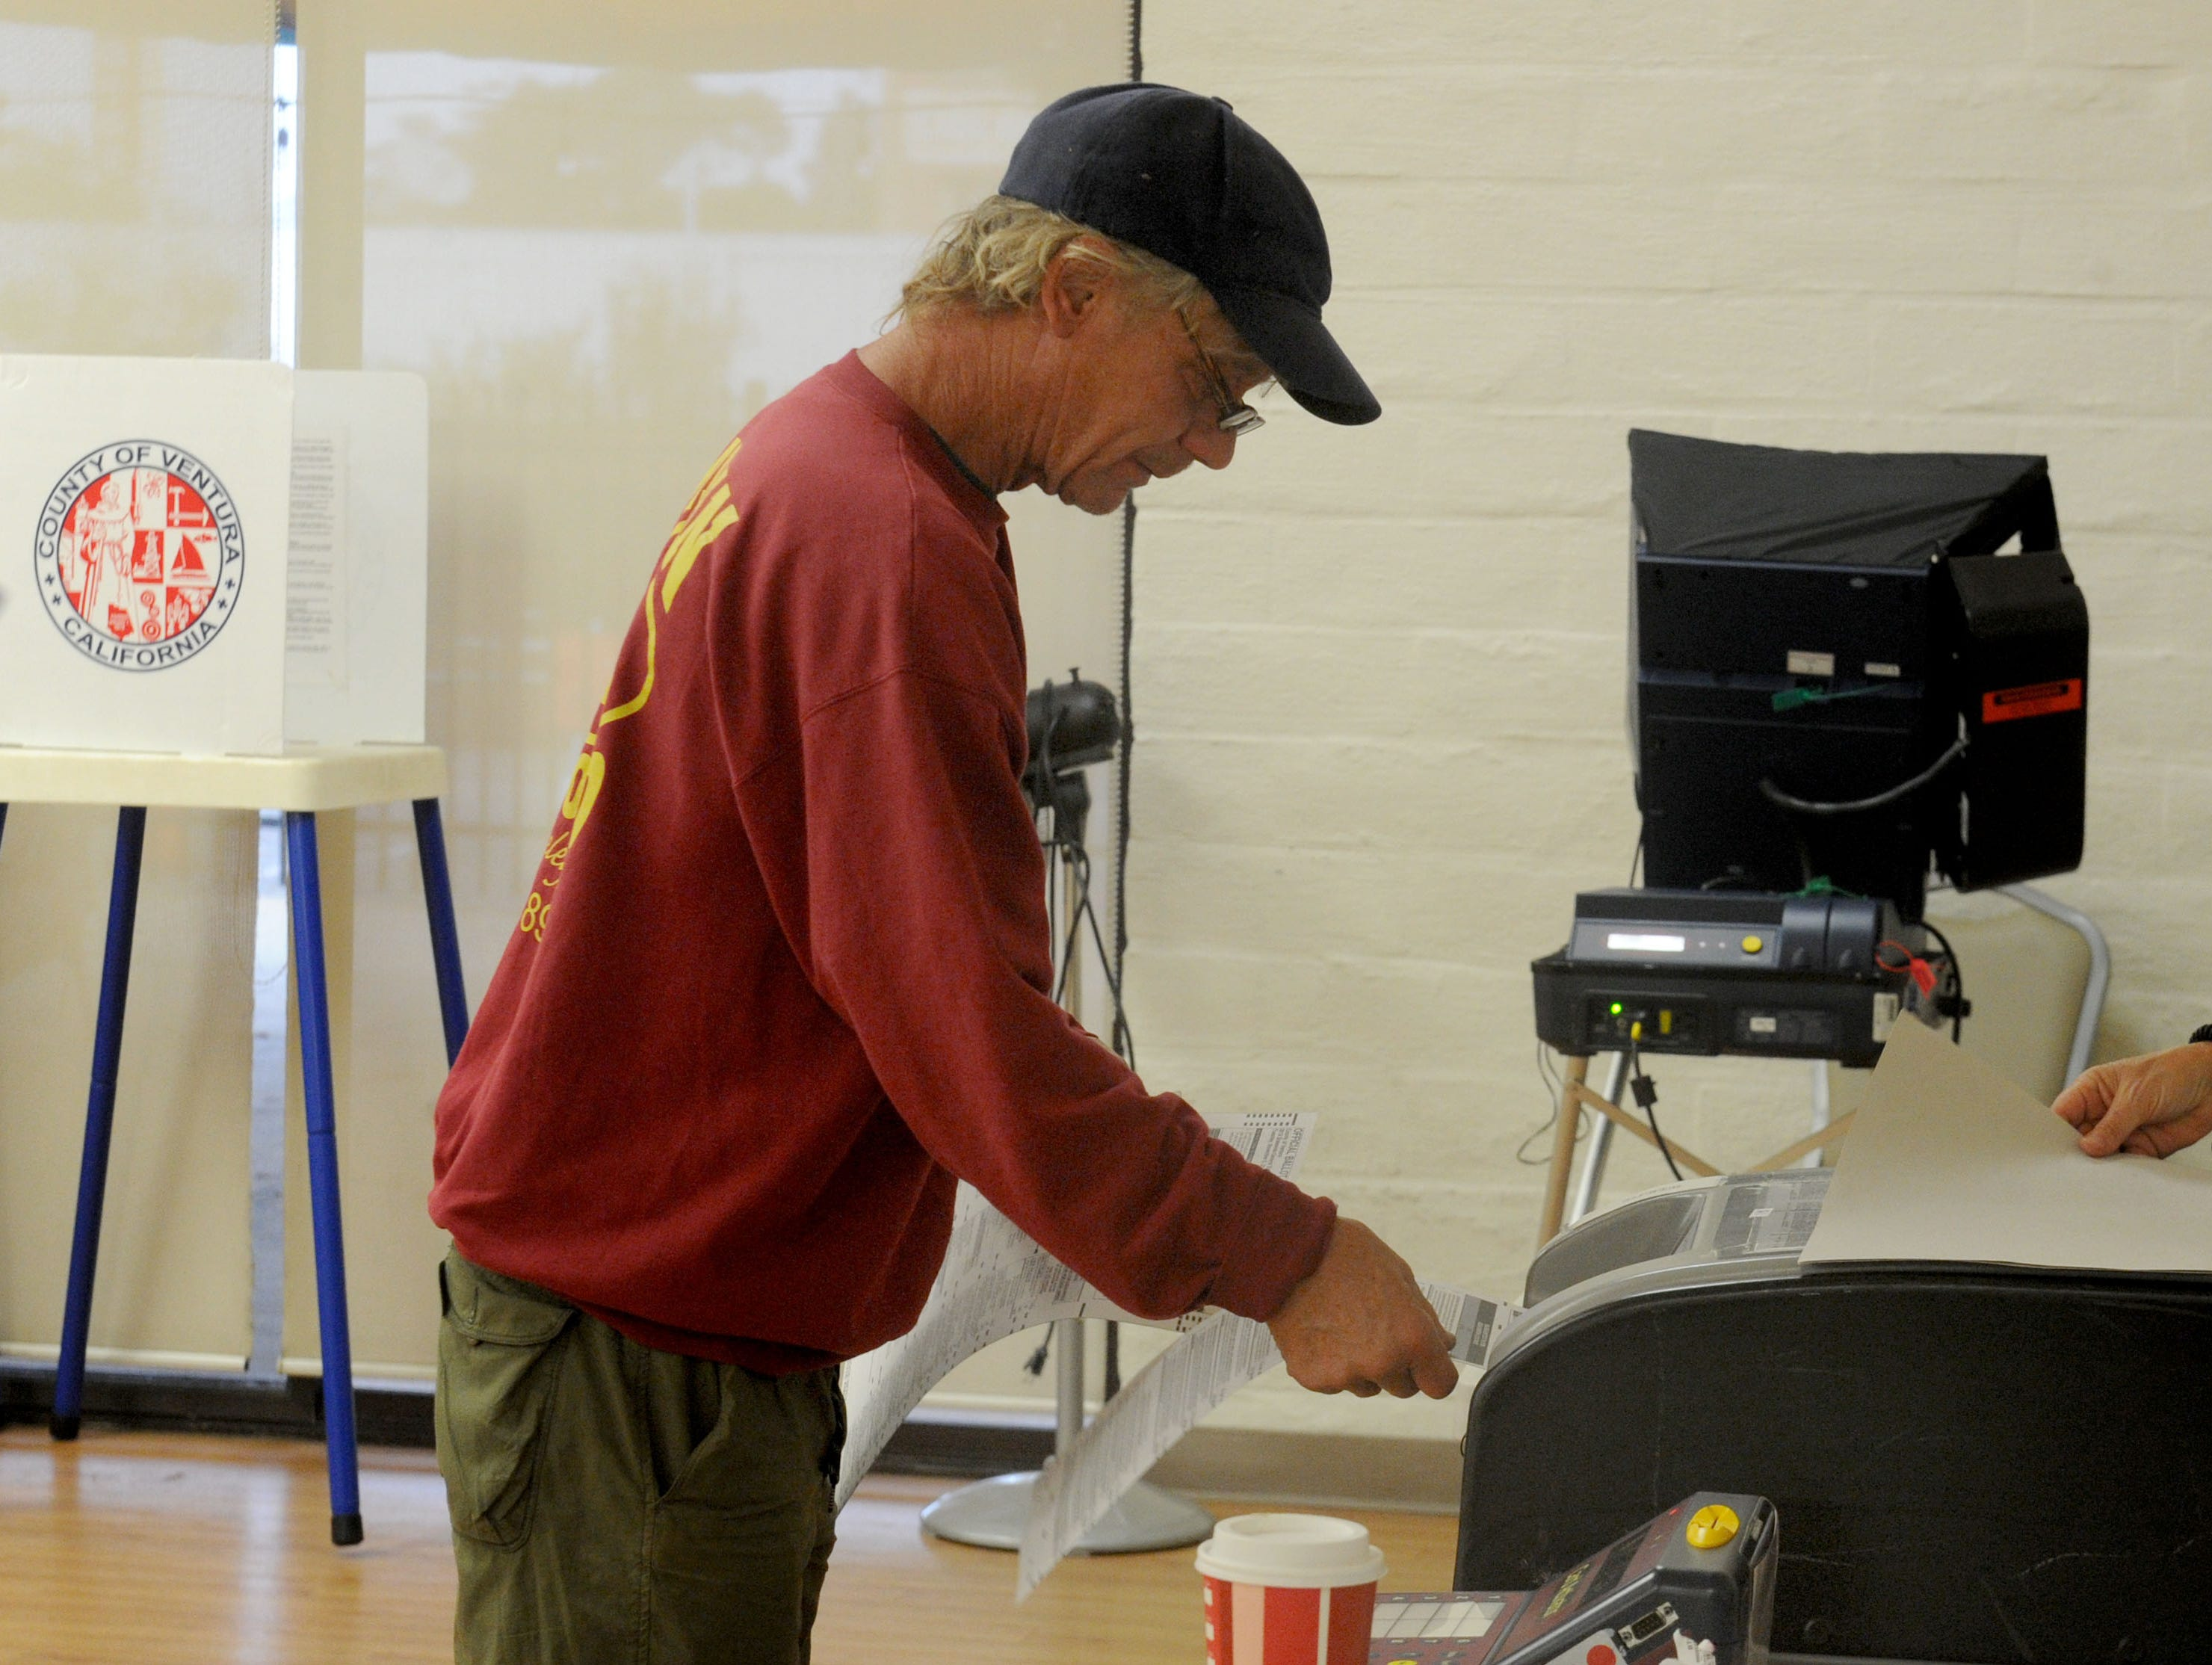 Russel Erickson votes at the Ventura Avenue Adult Center in Ventura on Tuesday morning. The center had a line of about 20 people.